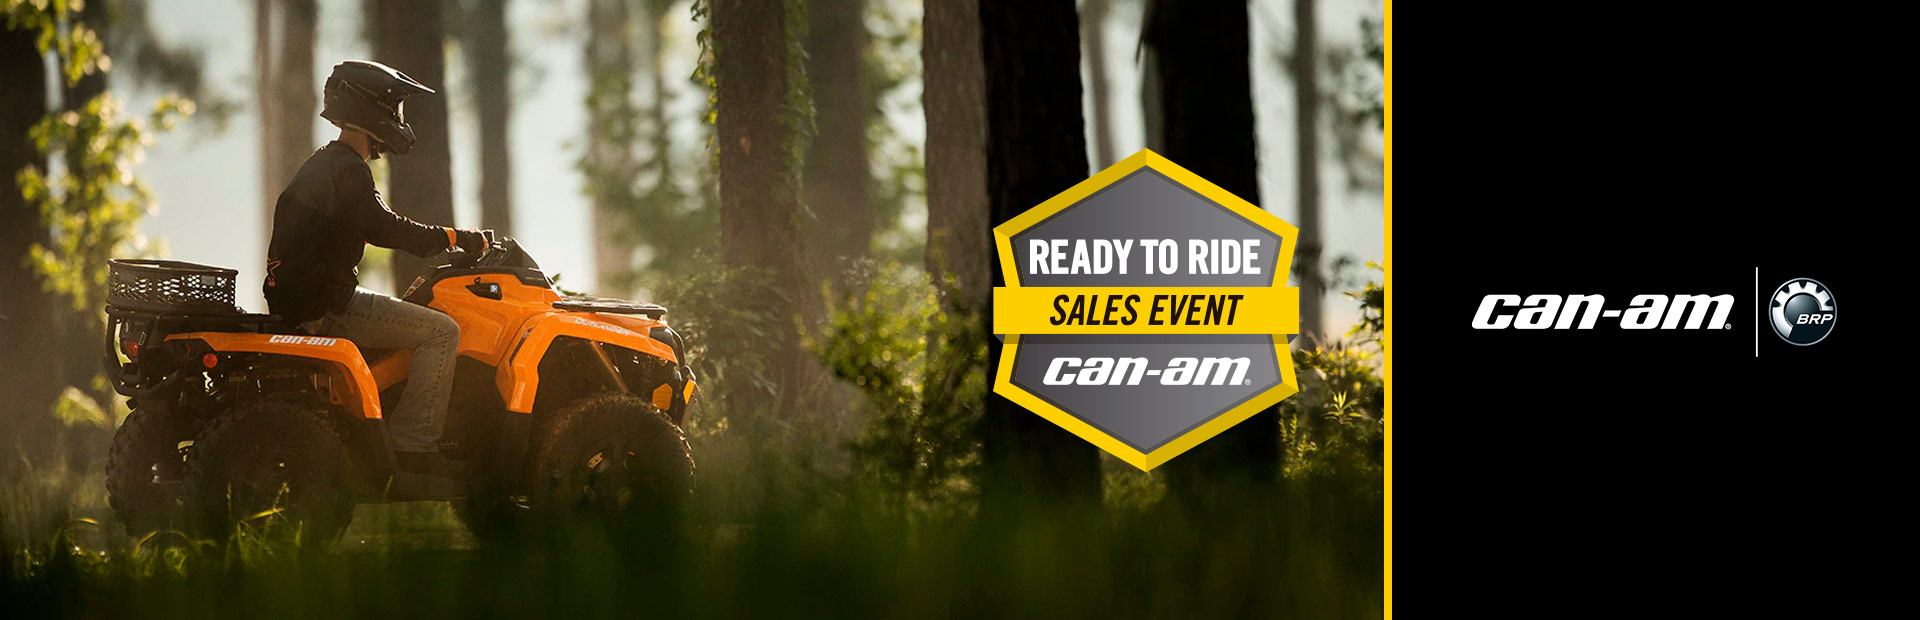 Can-Am: Ready to Ride Sales Event - Outlander